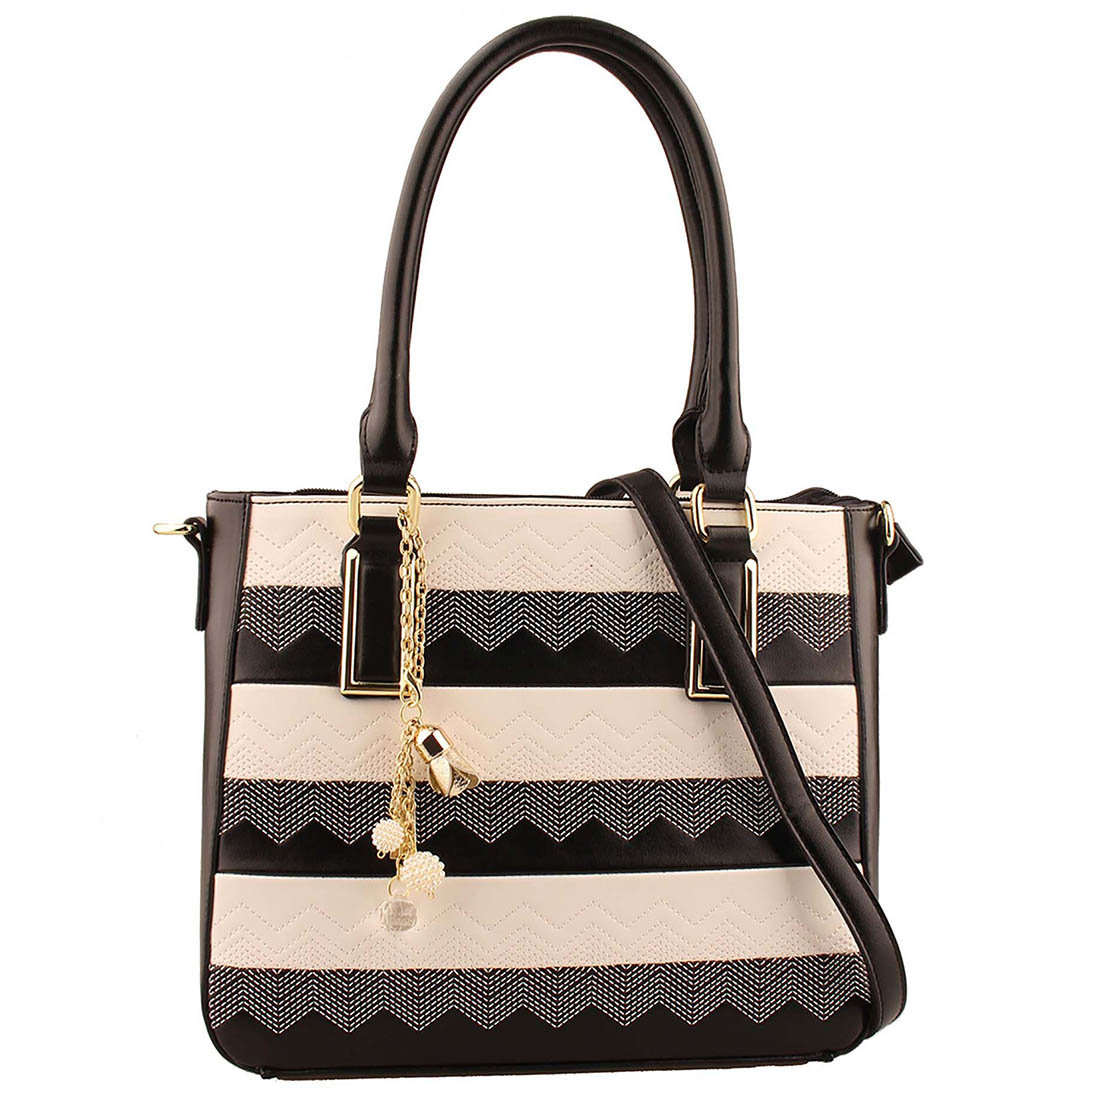 Bolsa Feminina Satchel Queens Paris QPB53U01